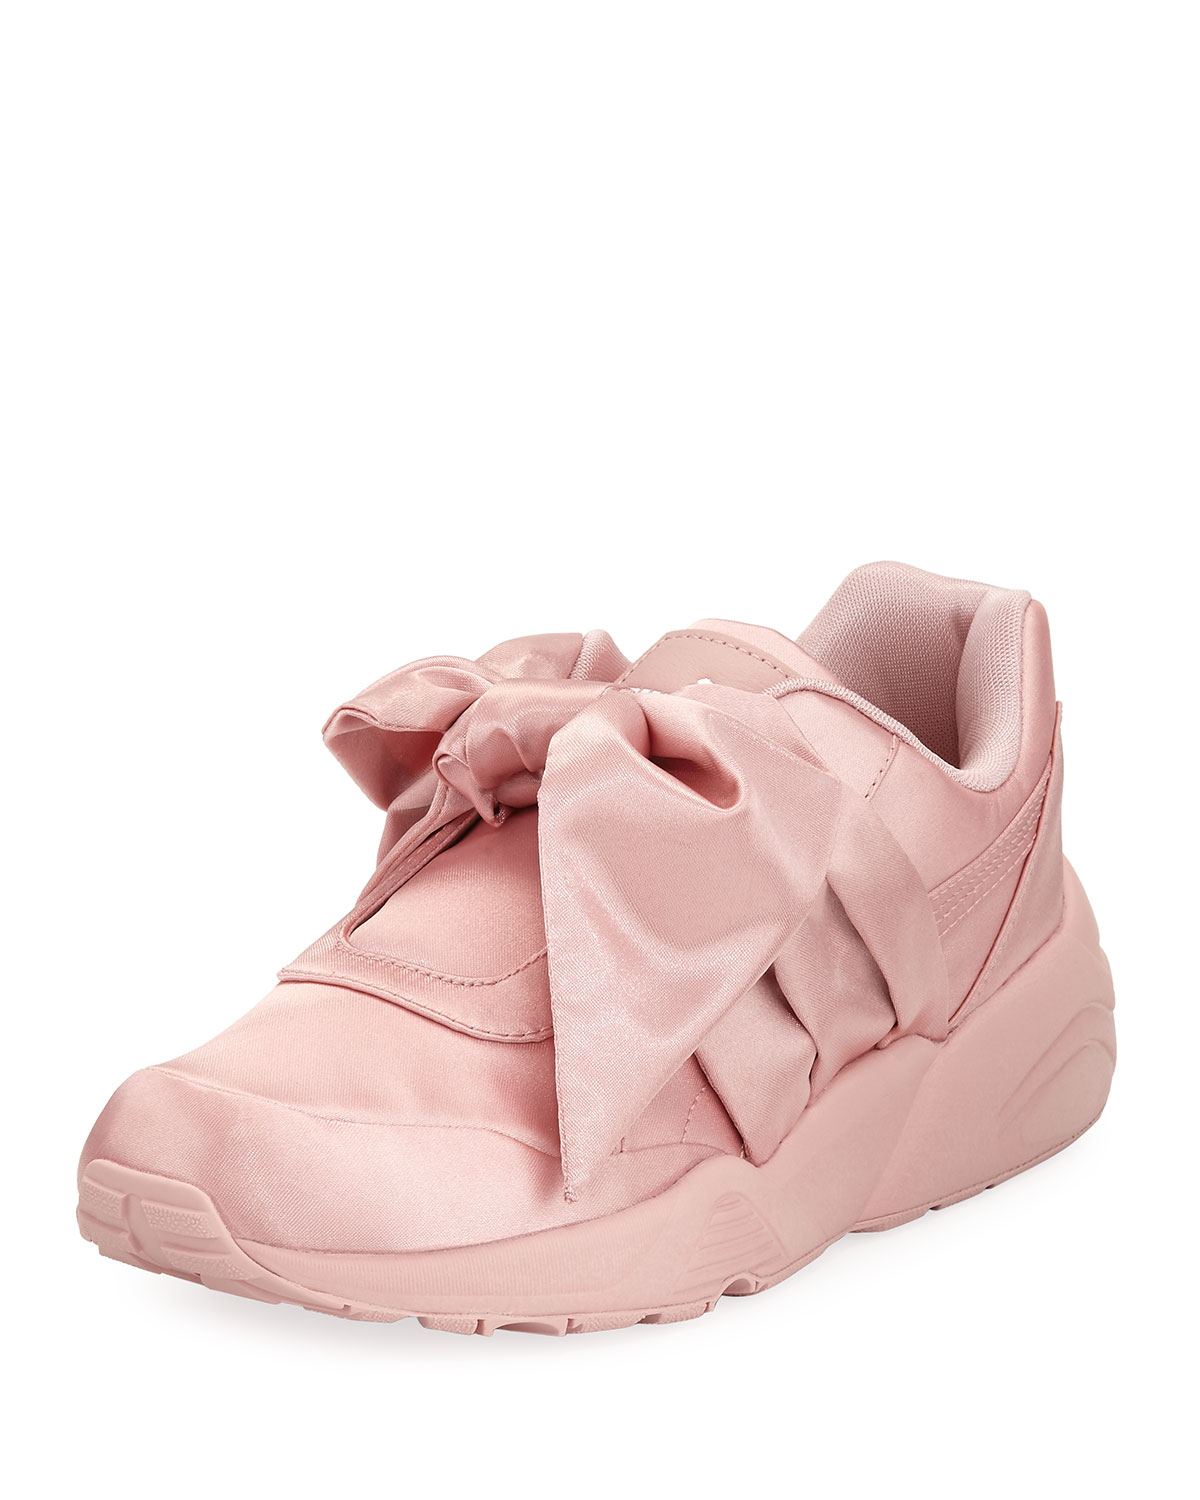 6d17b2bb8308 Fenty Puma by Rihanna Trinomic Knotted Bow Satin Sneakers ...